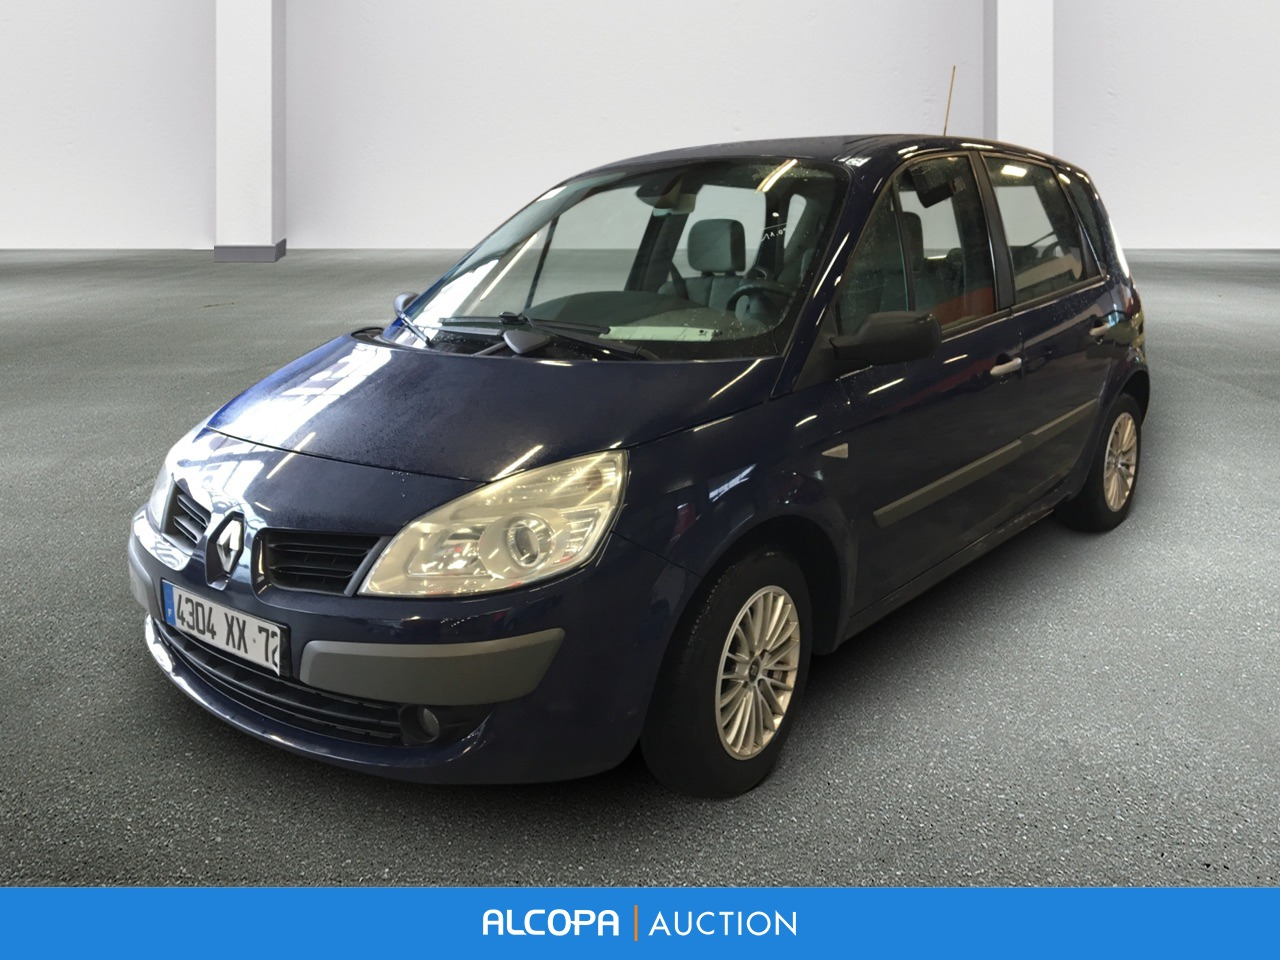 renault scenic ii scenic 1 5 dci 105 eco2 expression alcopa auction. Black Bedroom Furniture Sets. Home Design Ideas